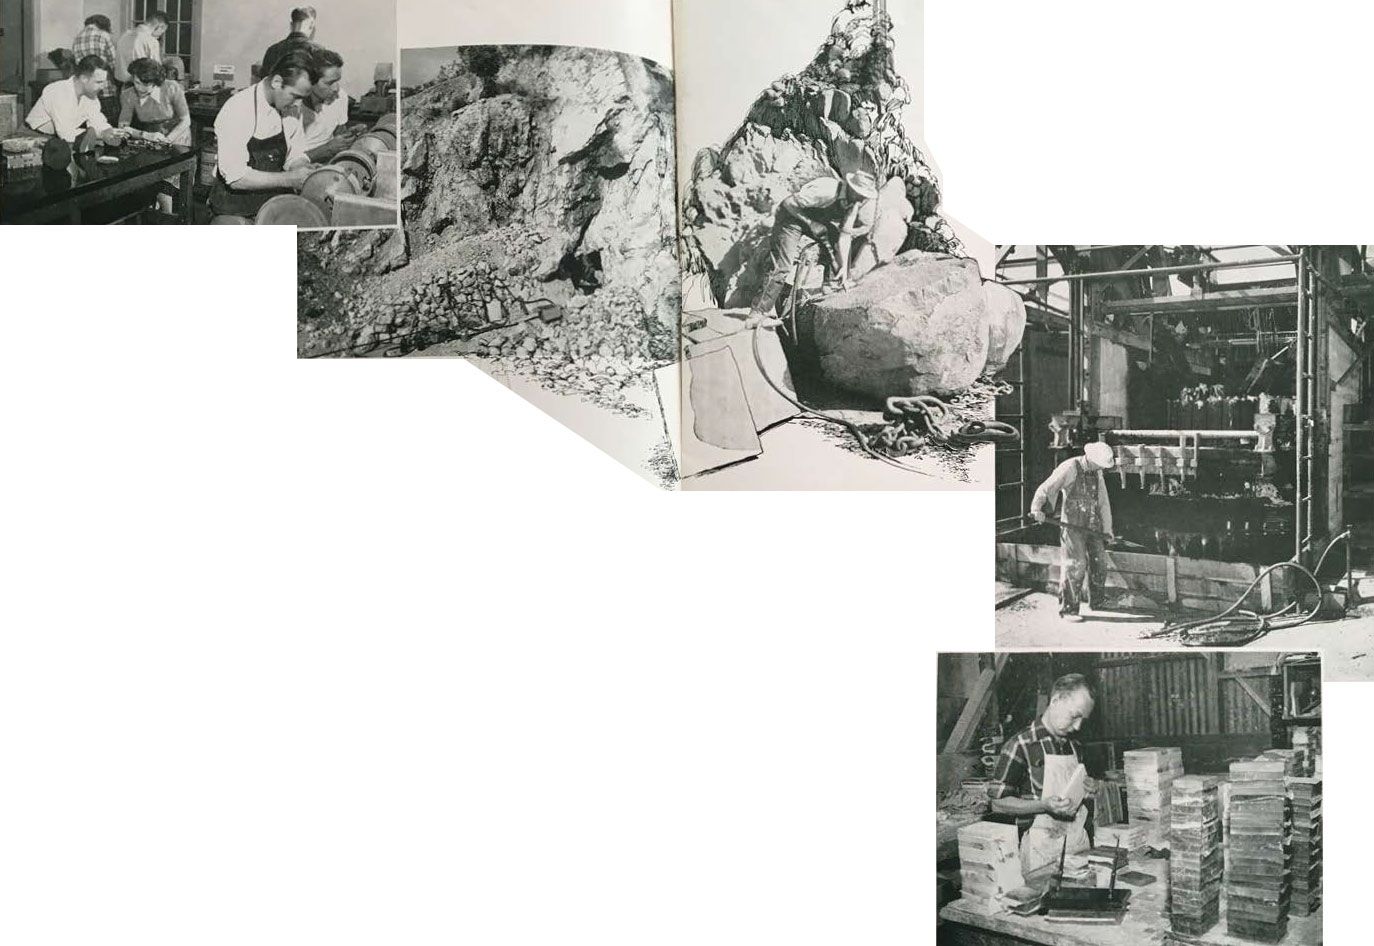 Left, members of the Convair Rockhounds Club are shown cutting and polishing San Diego County gem stones in their clubroom lapidary shop. Center left, the entrance to the Vanderberg Mine, scene of George Ashley's $15,000 kunzite discovery. Center right, skilled worker prepares to split black granite boulder taken from quarry near Escondido. After rough splitting, granite goes to the slabbing machine (at right) which actually saw the stone into slabs prior to final polishing. Right, onyx, mined in Baja California, is brought to San Diego to be cut and polished into desk pen bases.